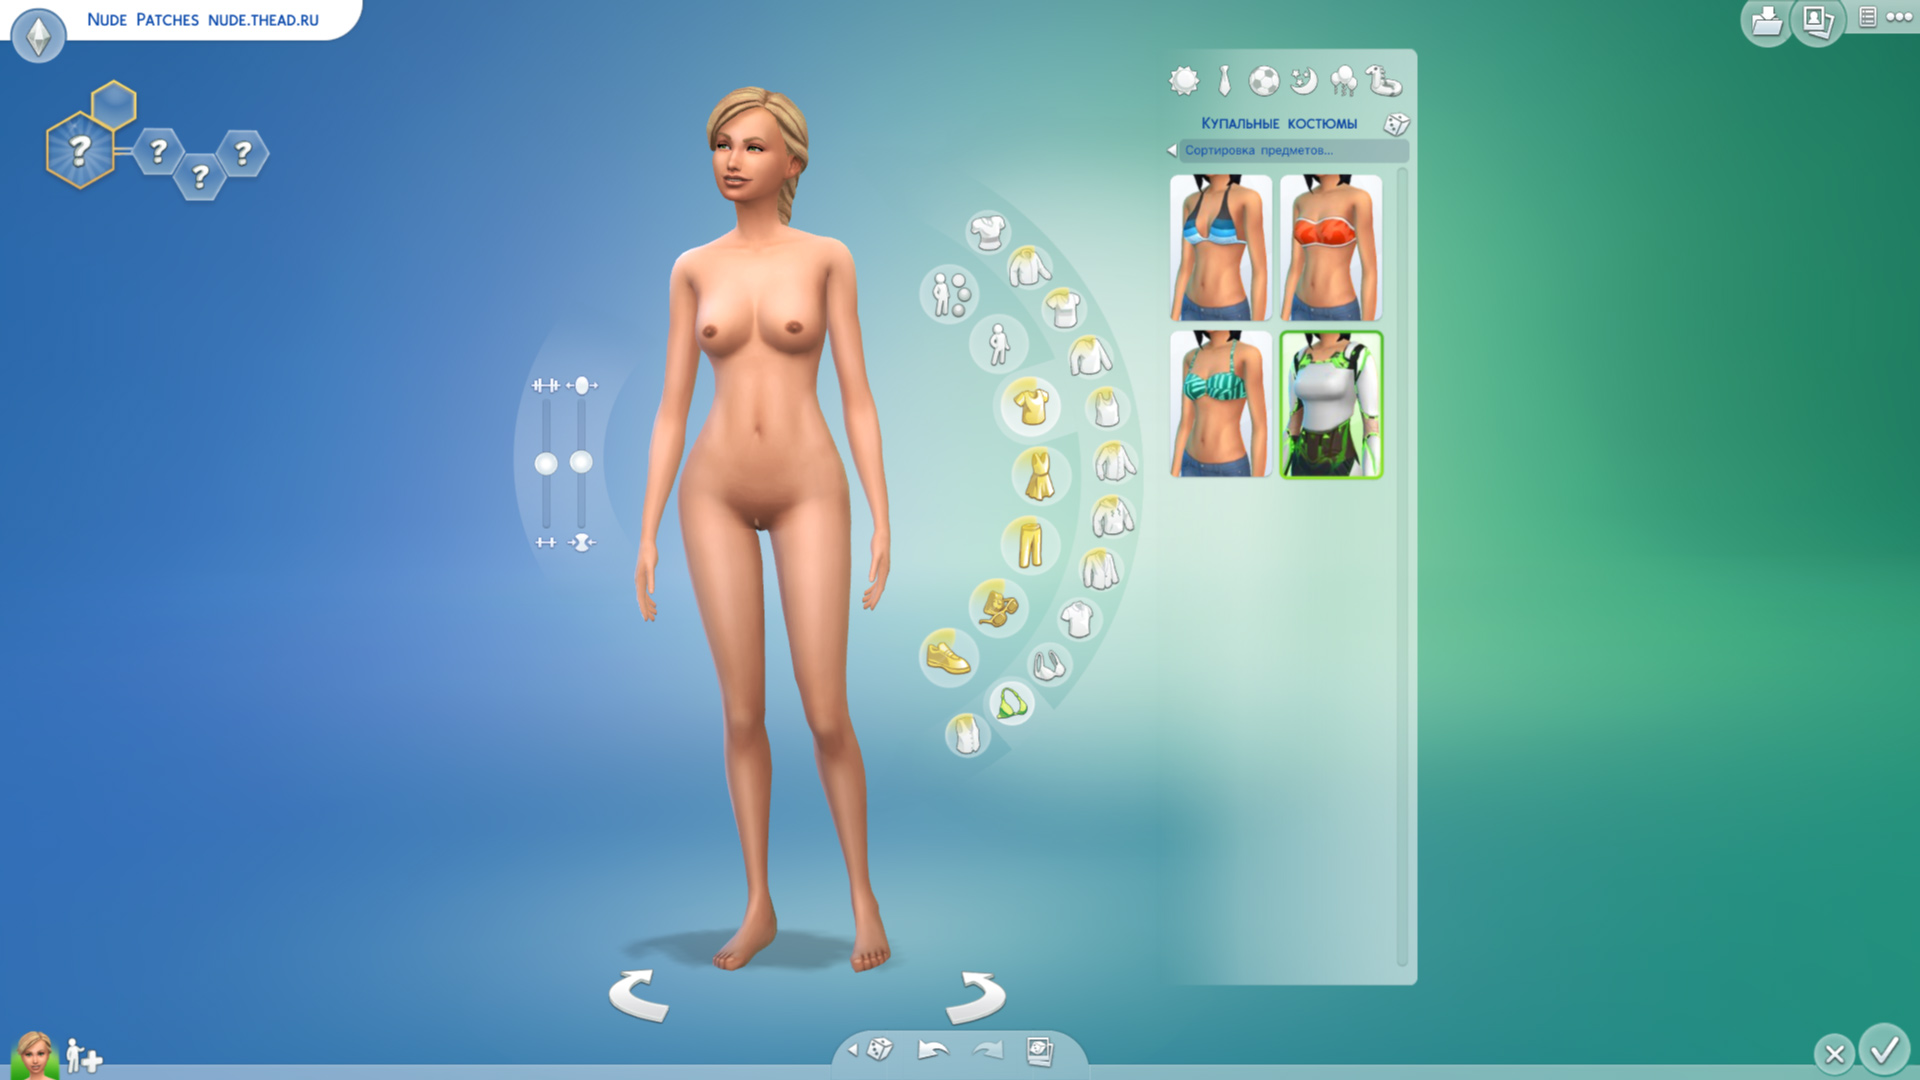 Sims nude patch mac exposed toons